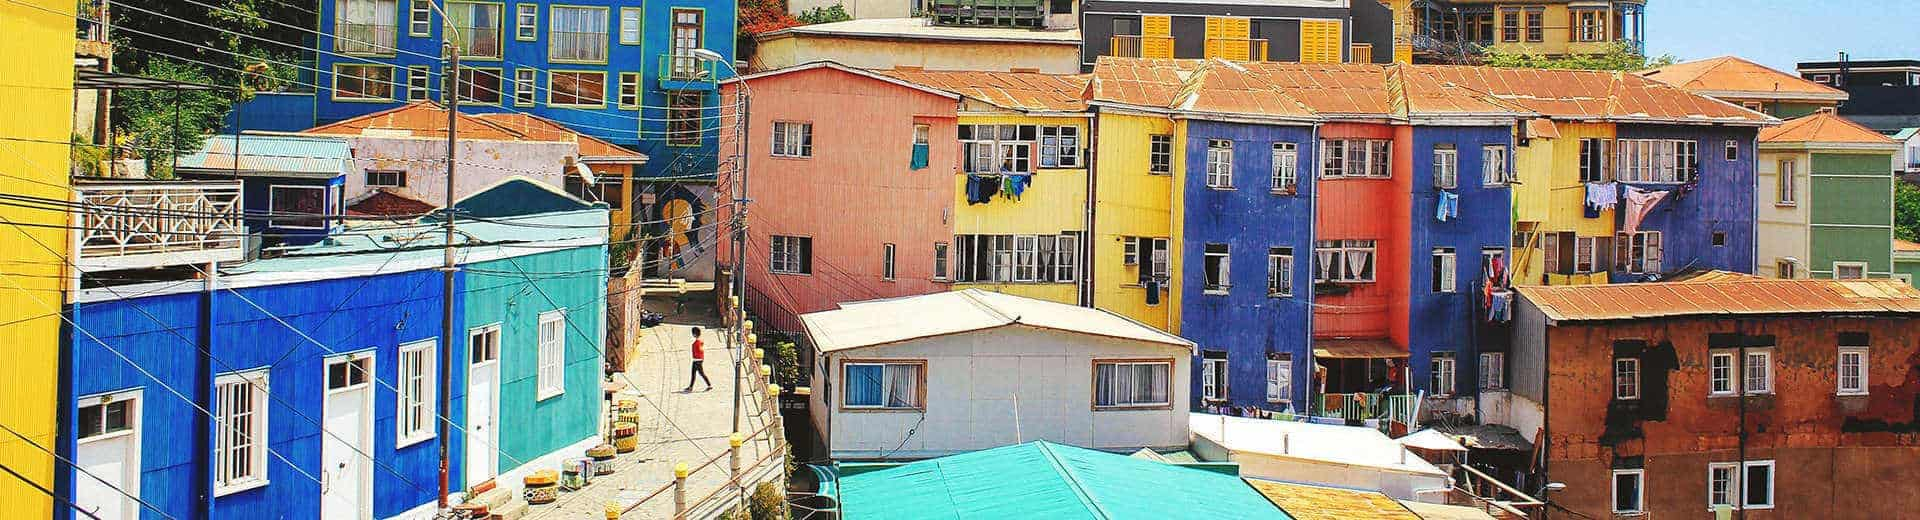 Colorful buildings in Santiago, Chile